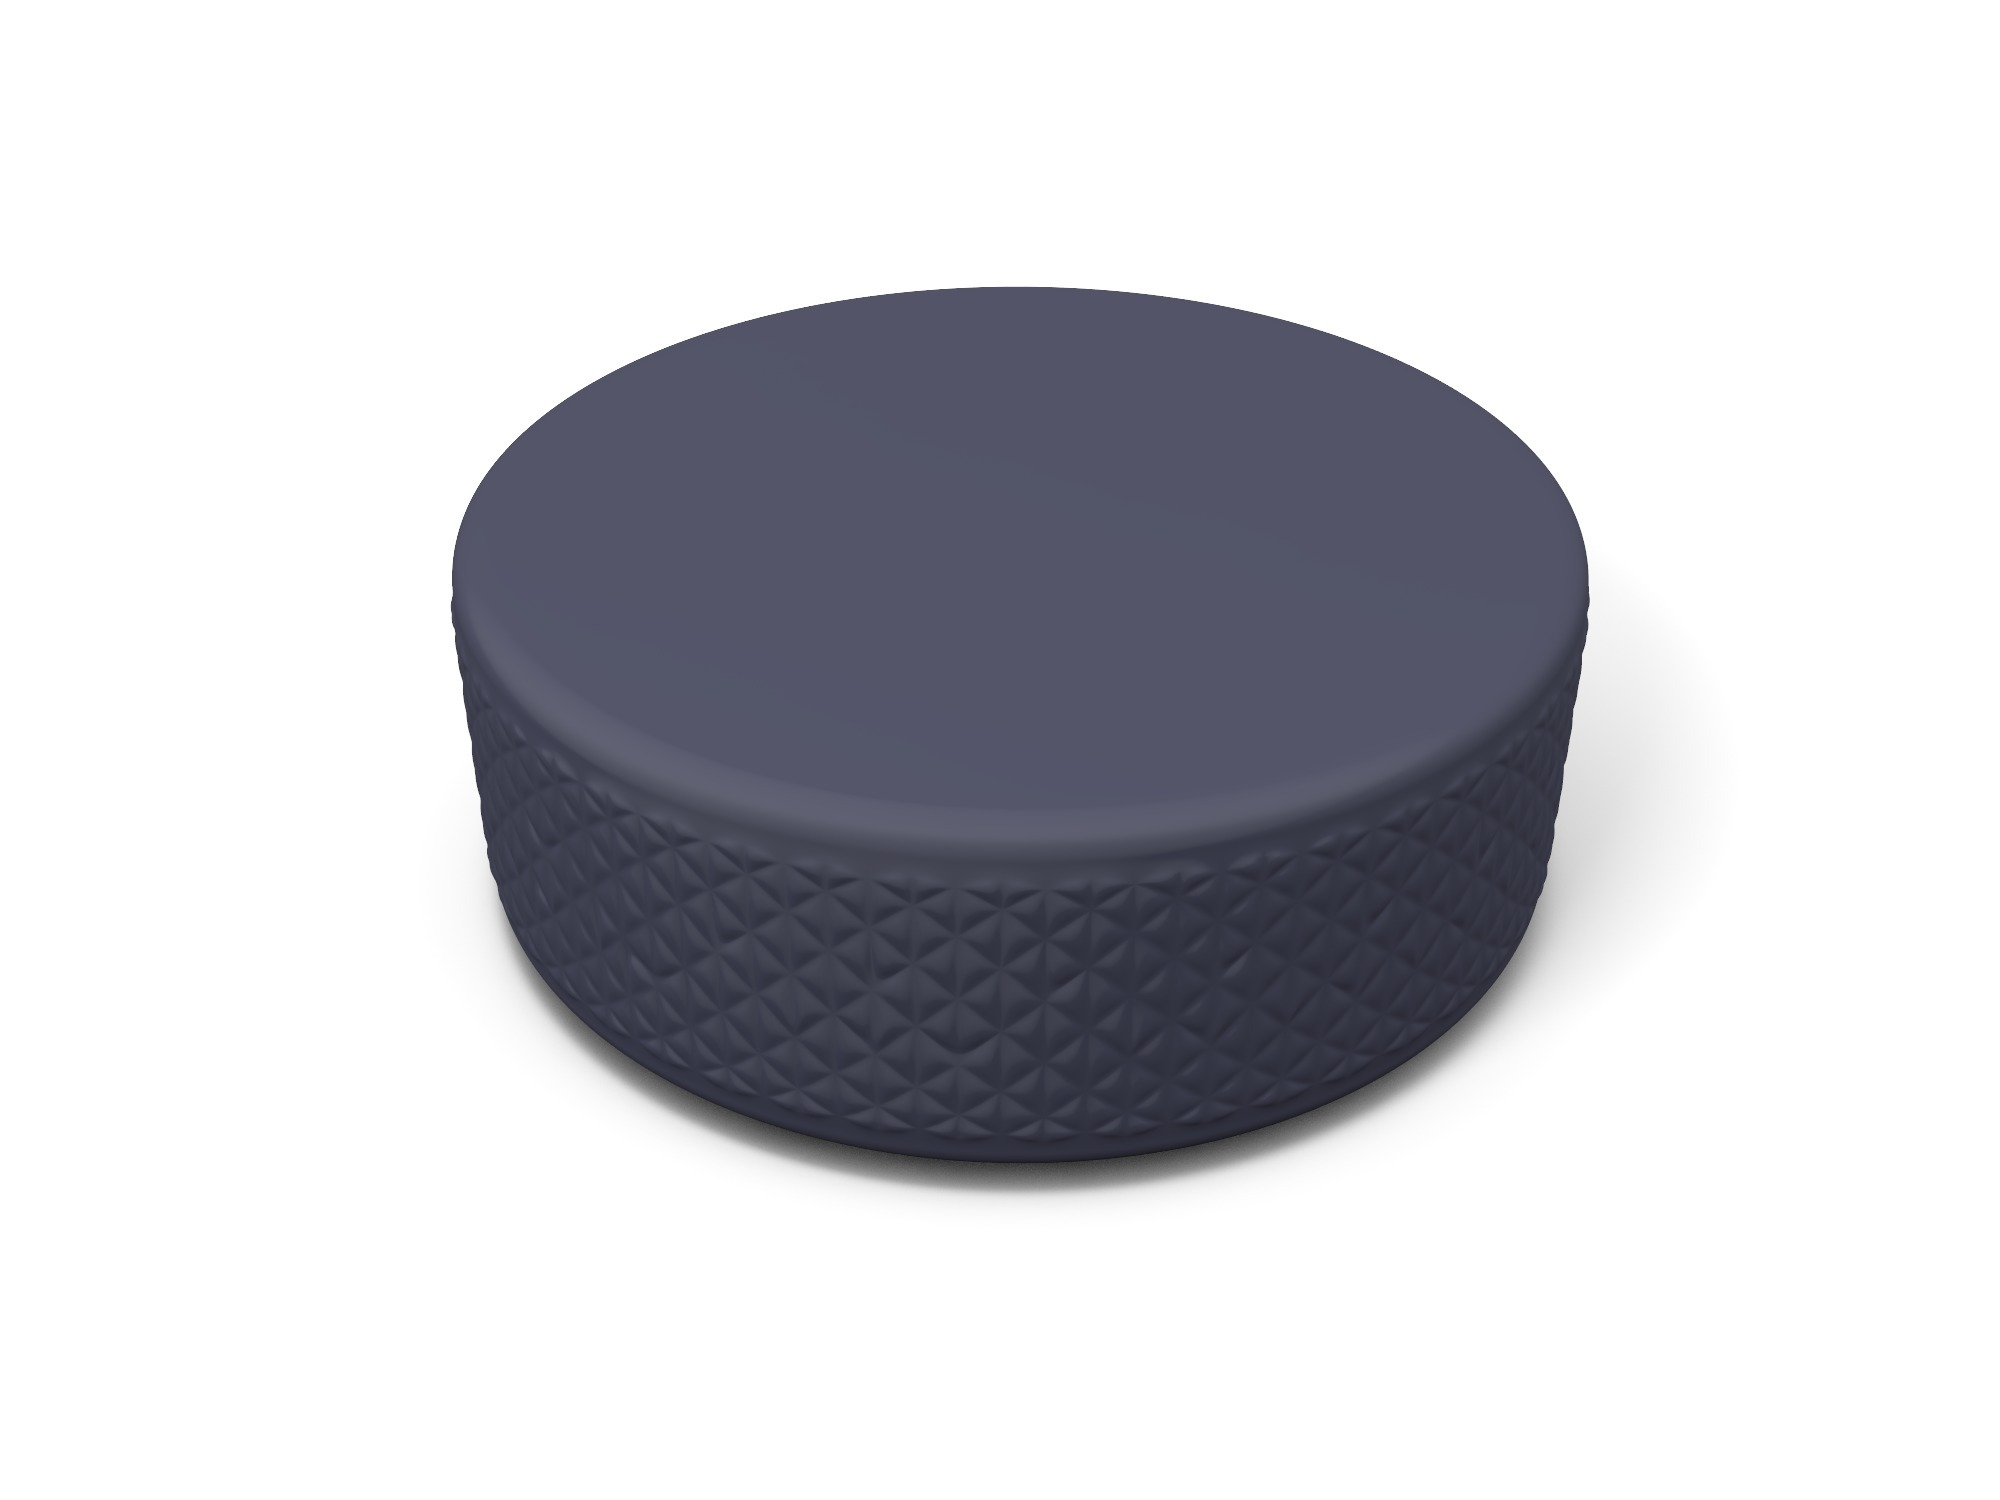 Hockey puck - 3D design by Vectary assets Aug 20, 2018